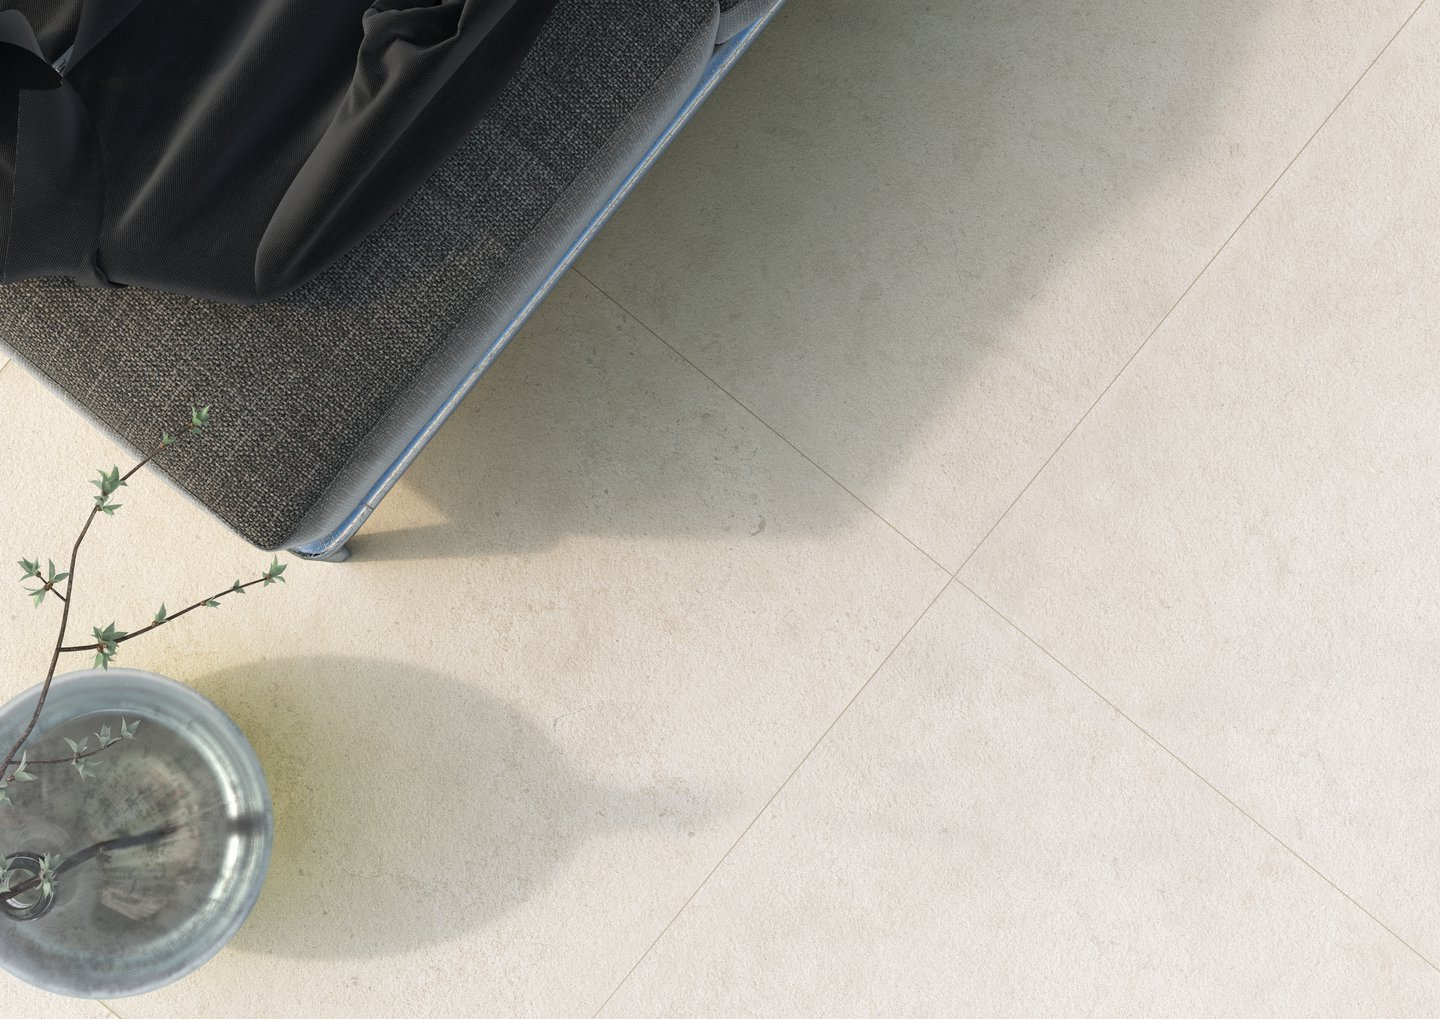 Johnson tiles ceramic wall floor tiles our product ranges are available in a wealth of sizes and styles floor and wall options to ensure seamless co ordination for hospitality residential and dailygadgetfo Gallery